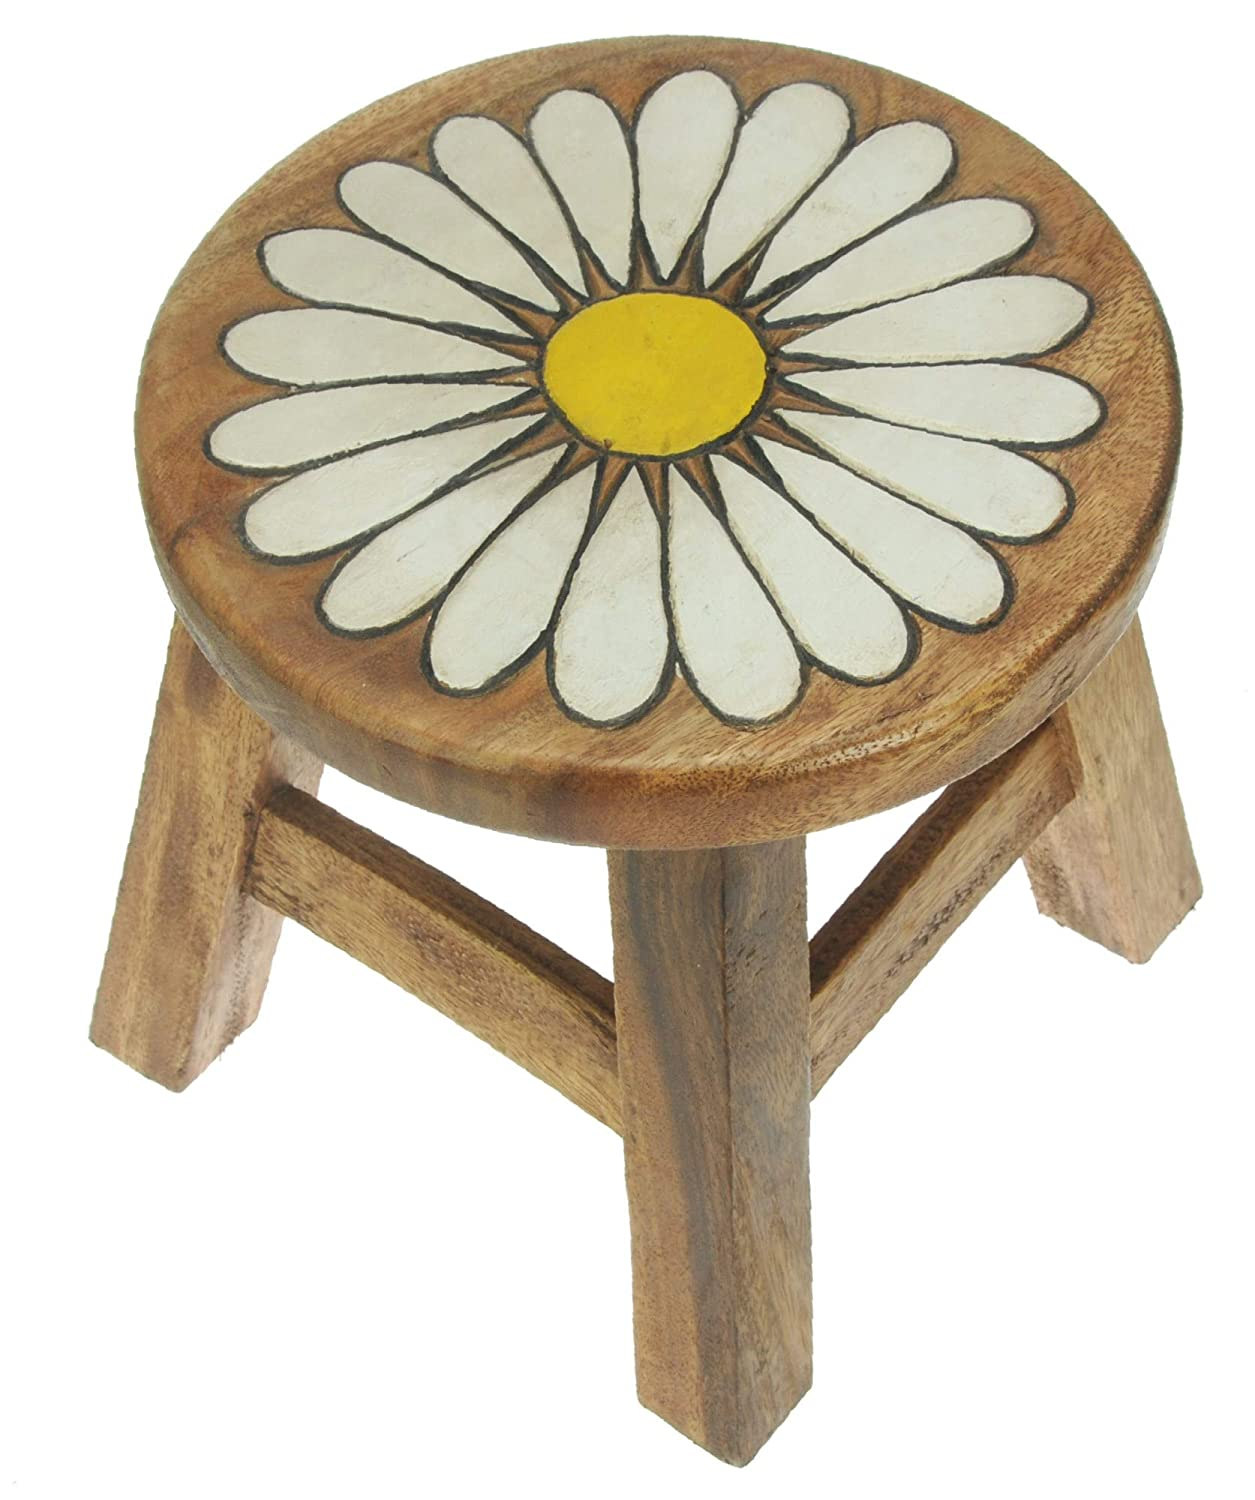 Namesakes Childrens Wooden stool - Flower - Fun for kids - Handcrafted from Wood - Present for Boys or Girls All My Gift Ideas